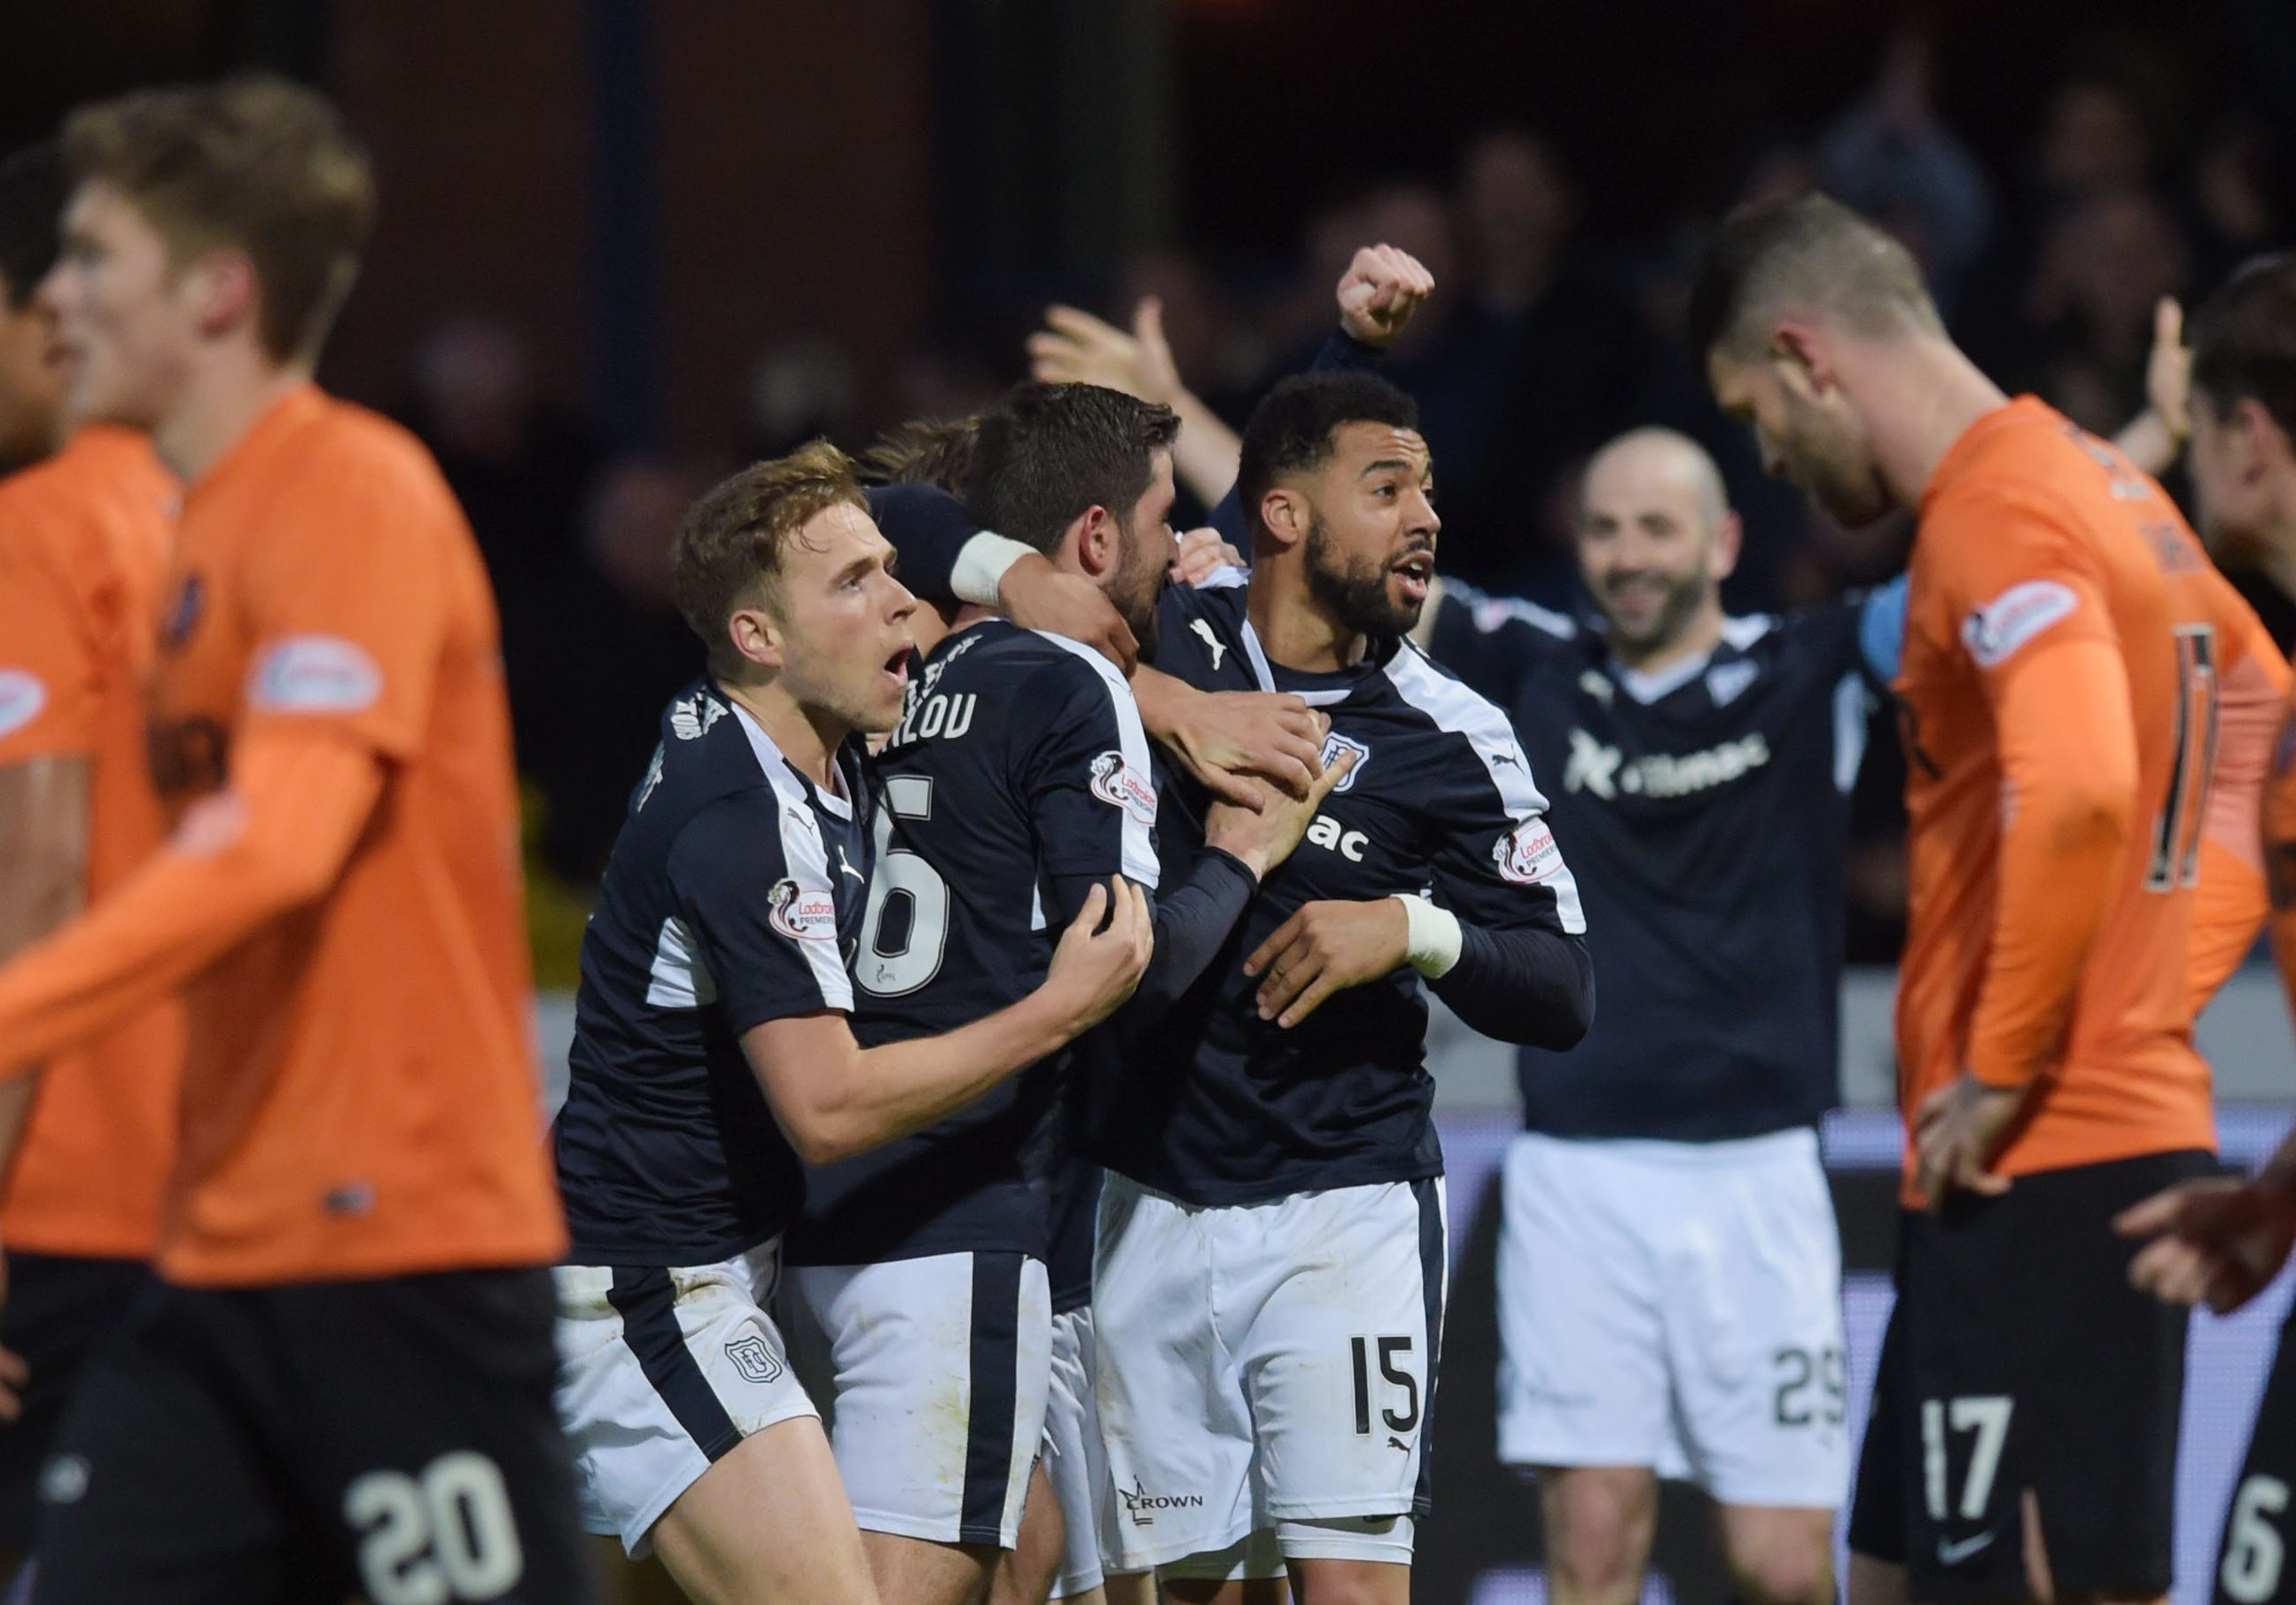 Could there be another derby with Premiership football on the line for both Dundee clubs?